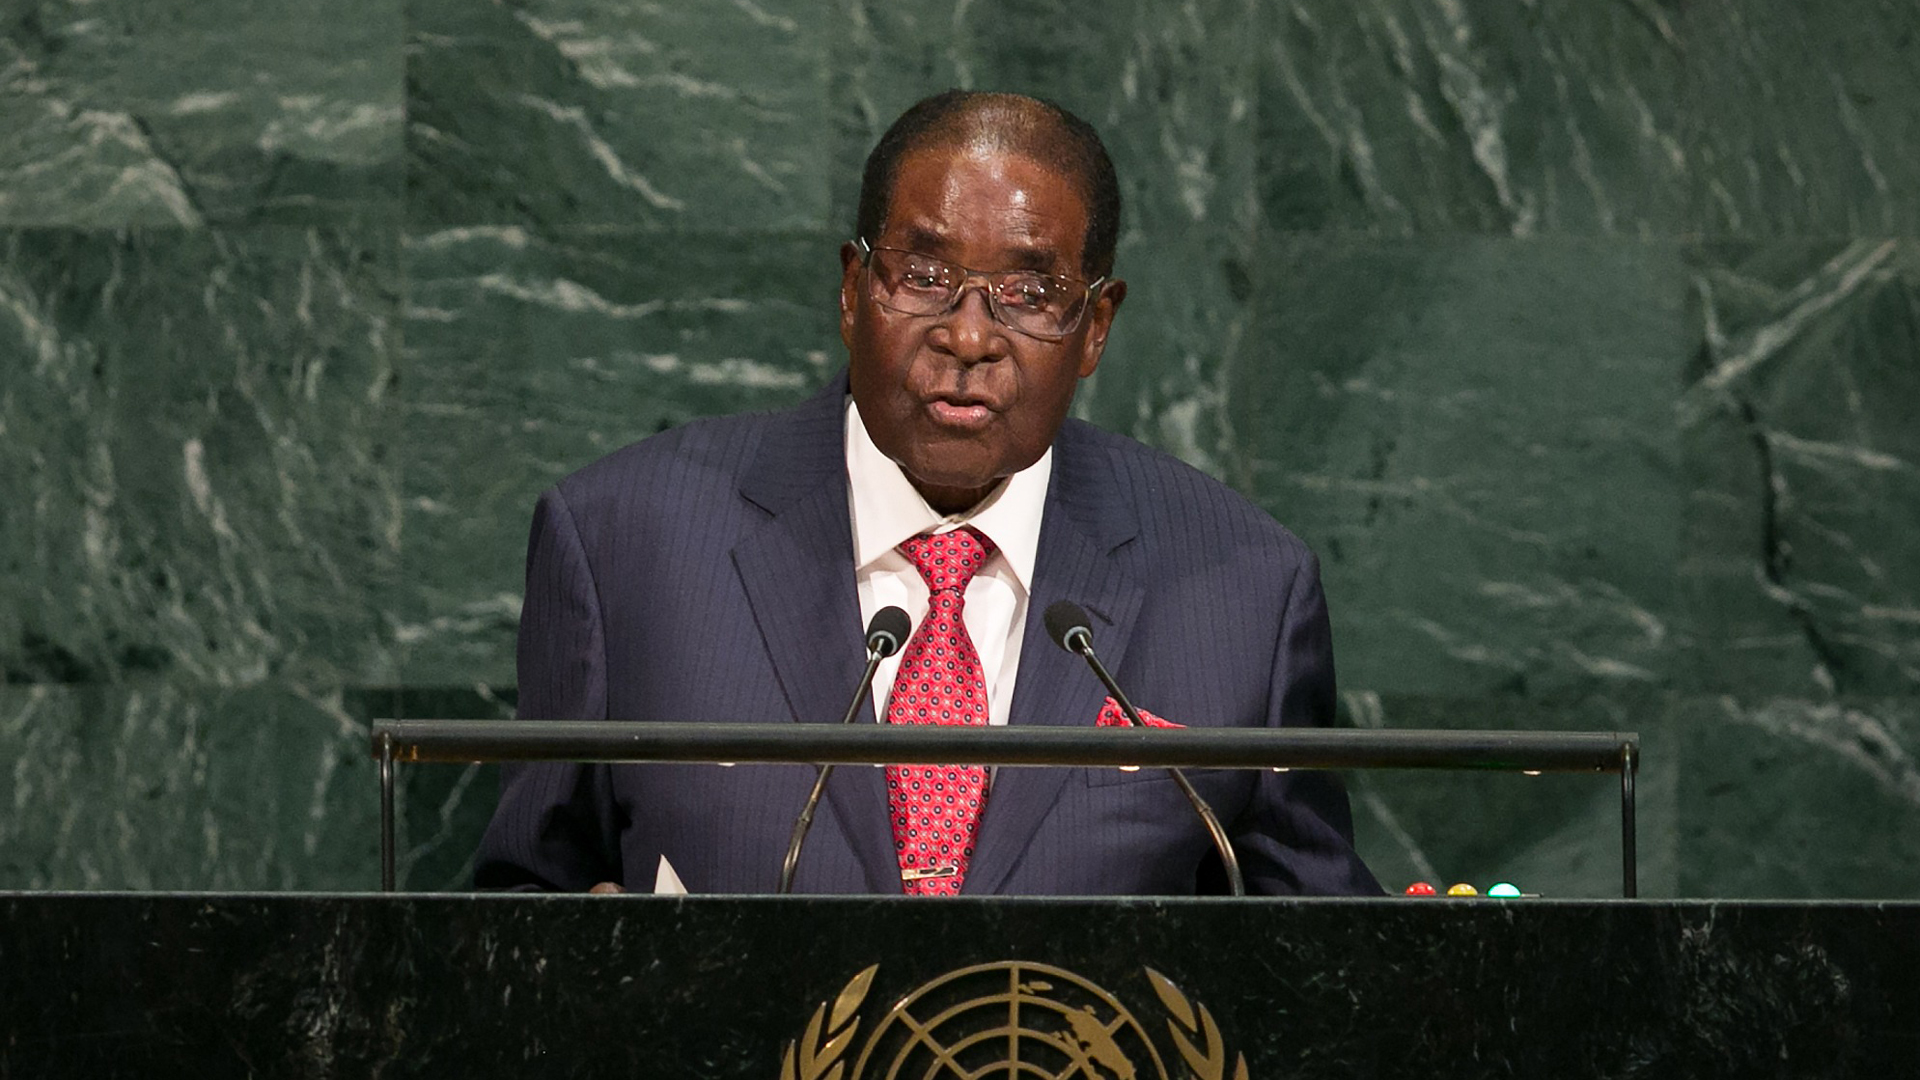 Zimbabwe's President Robert Gabriel Mugabe, Zimbabwe, at United Nations UN general assembly in New York29787447-159532